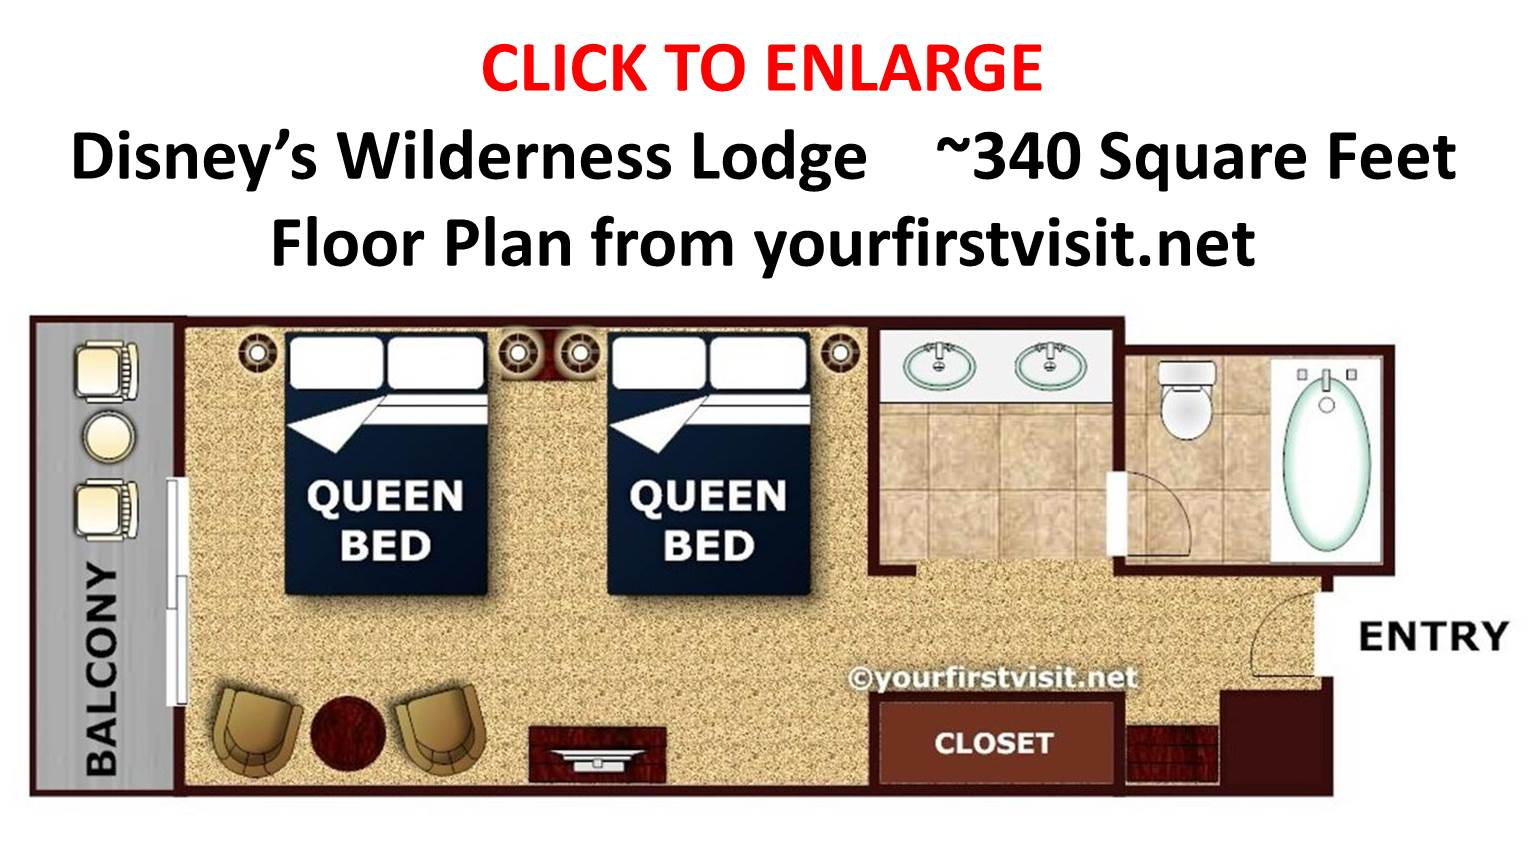 Accommodations At Disney's Wilderness Lodge